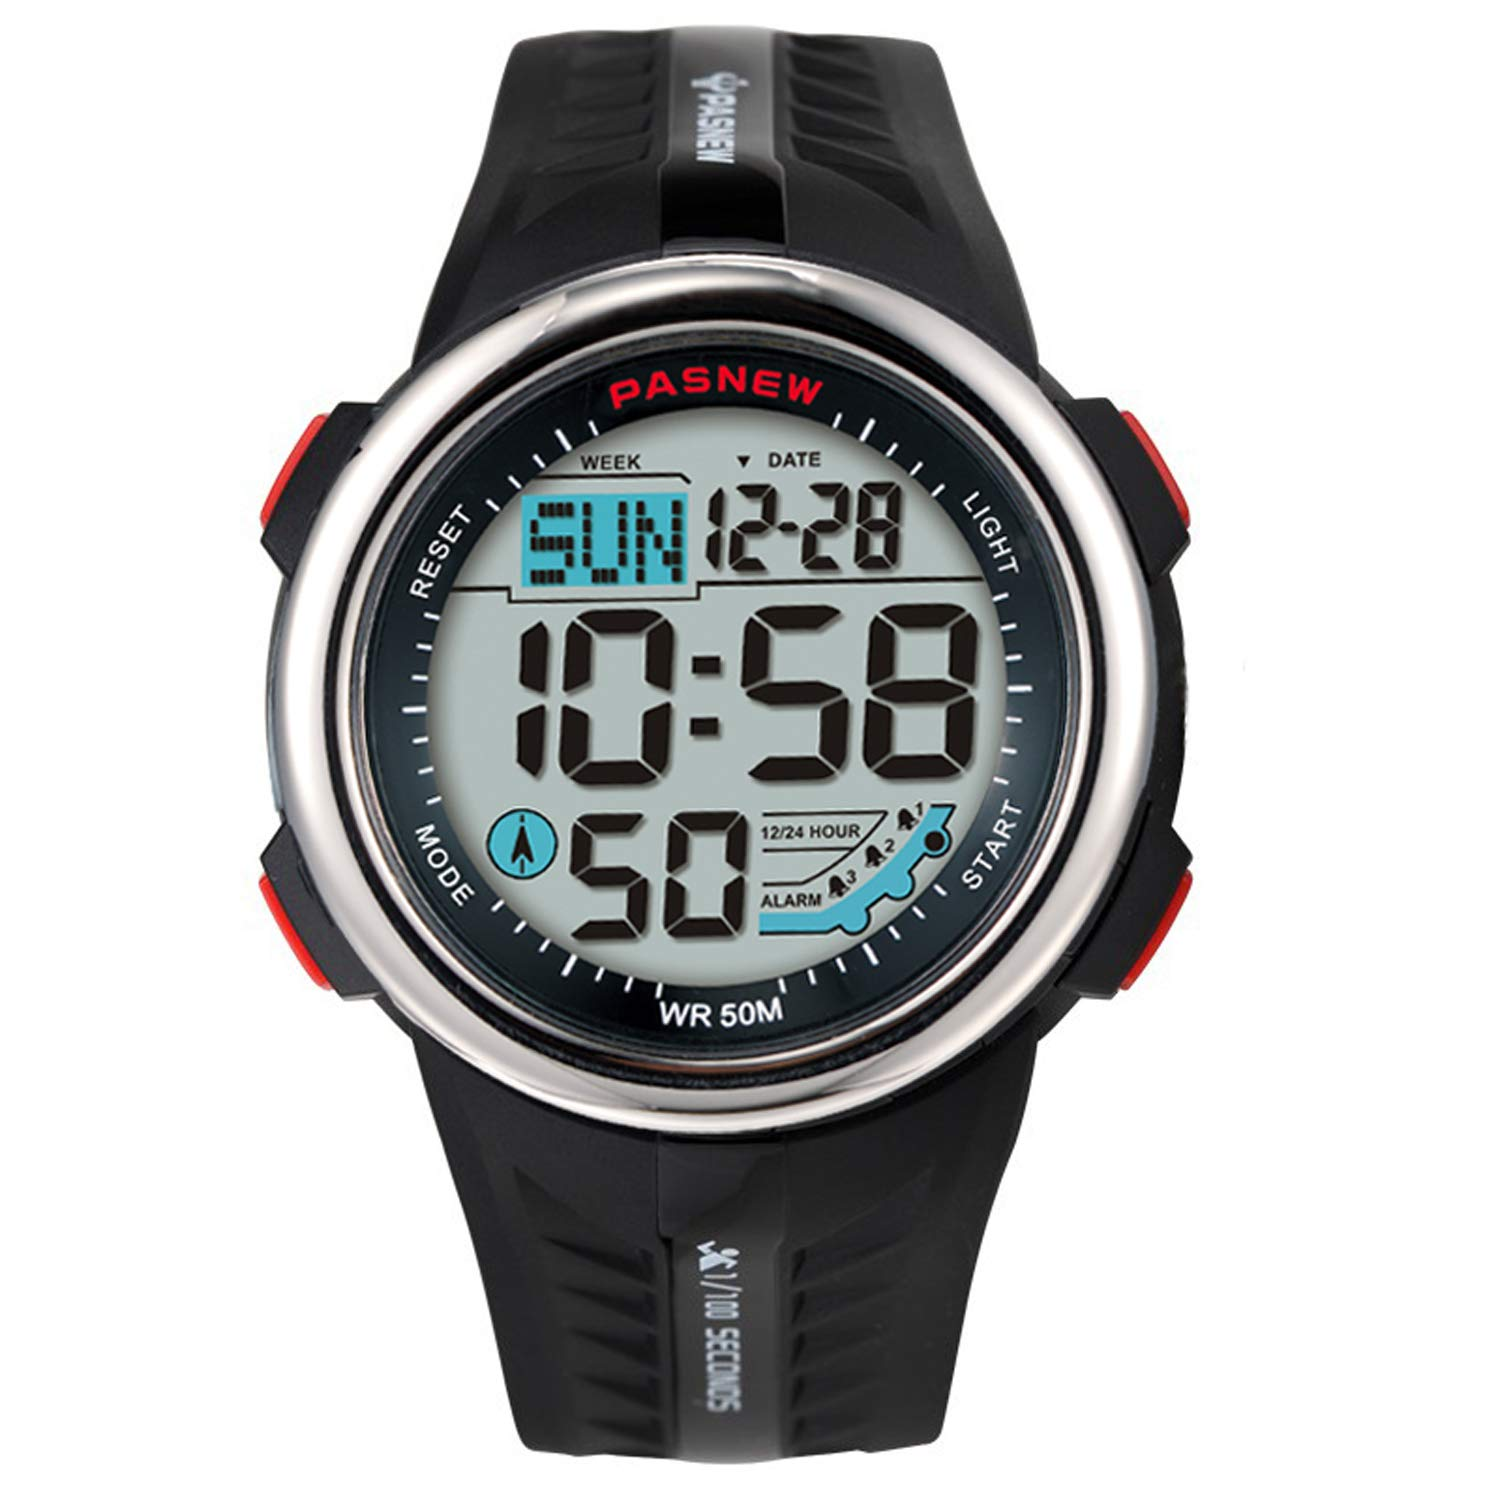 Teens Watches for Boys 100M Water-Resistant Dual Time 3 Alarms Digital Outdoor Sport Gifts for Mens Young 442br by PASNEW